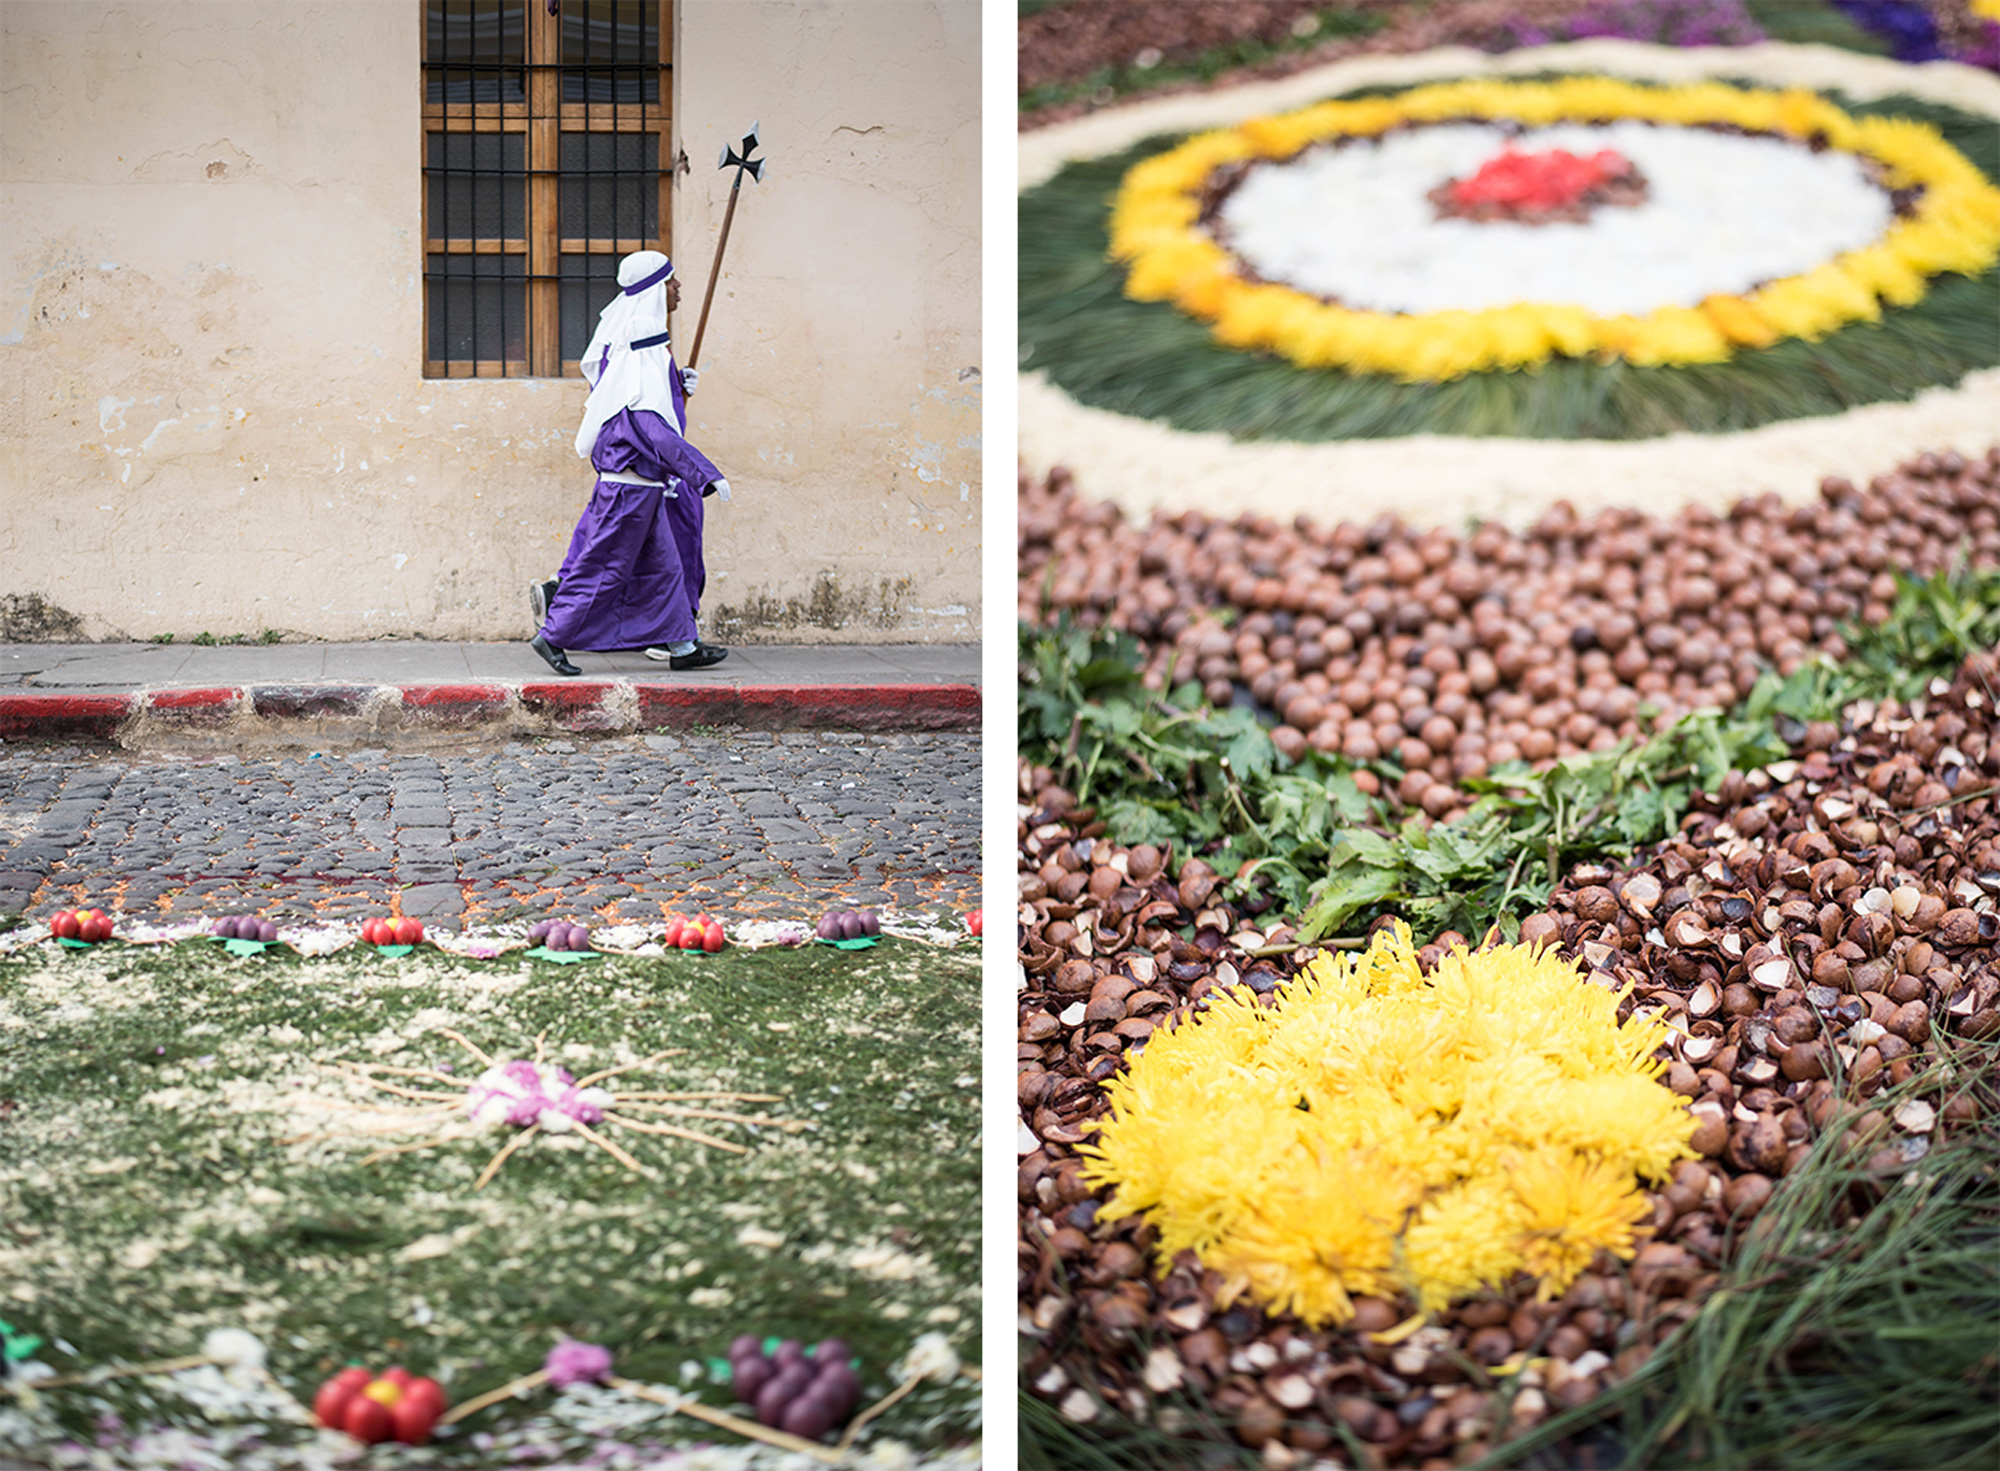 Alfombras are also still made in the old way, using pine needles, owers, nuts, shells, fruits, vegetables, herbs and other materials sourced from nature.